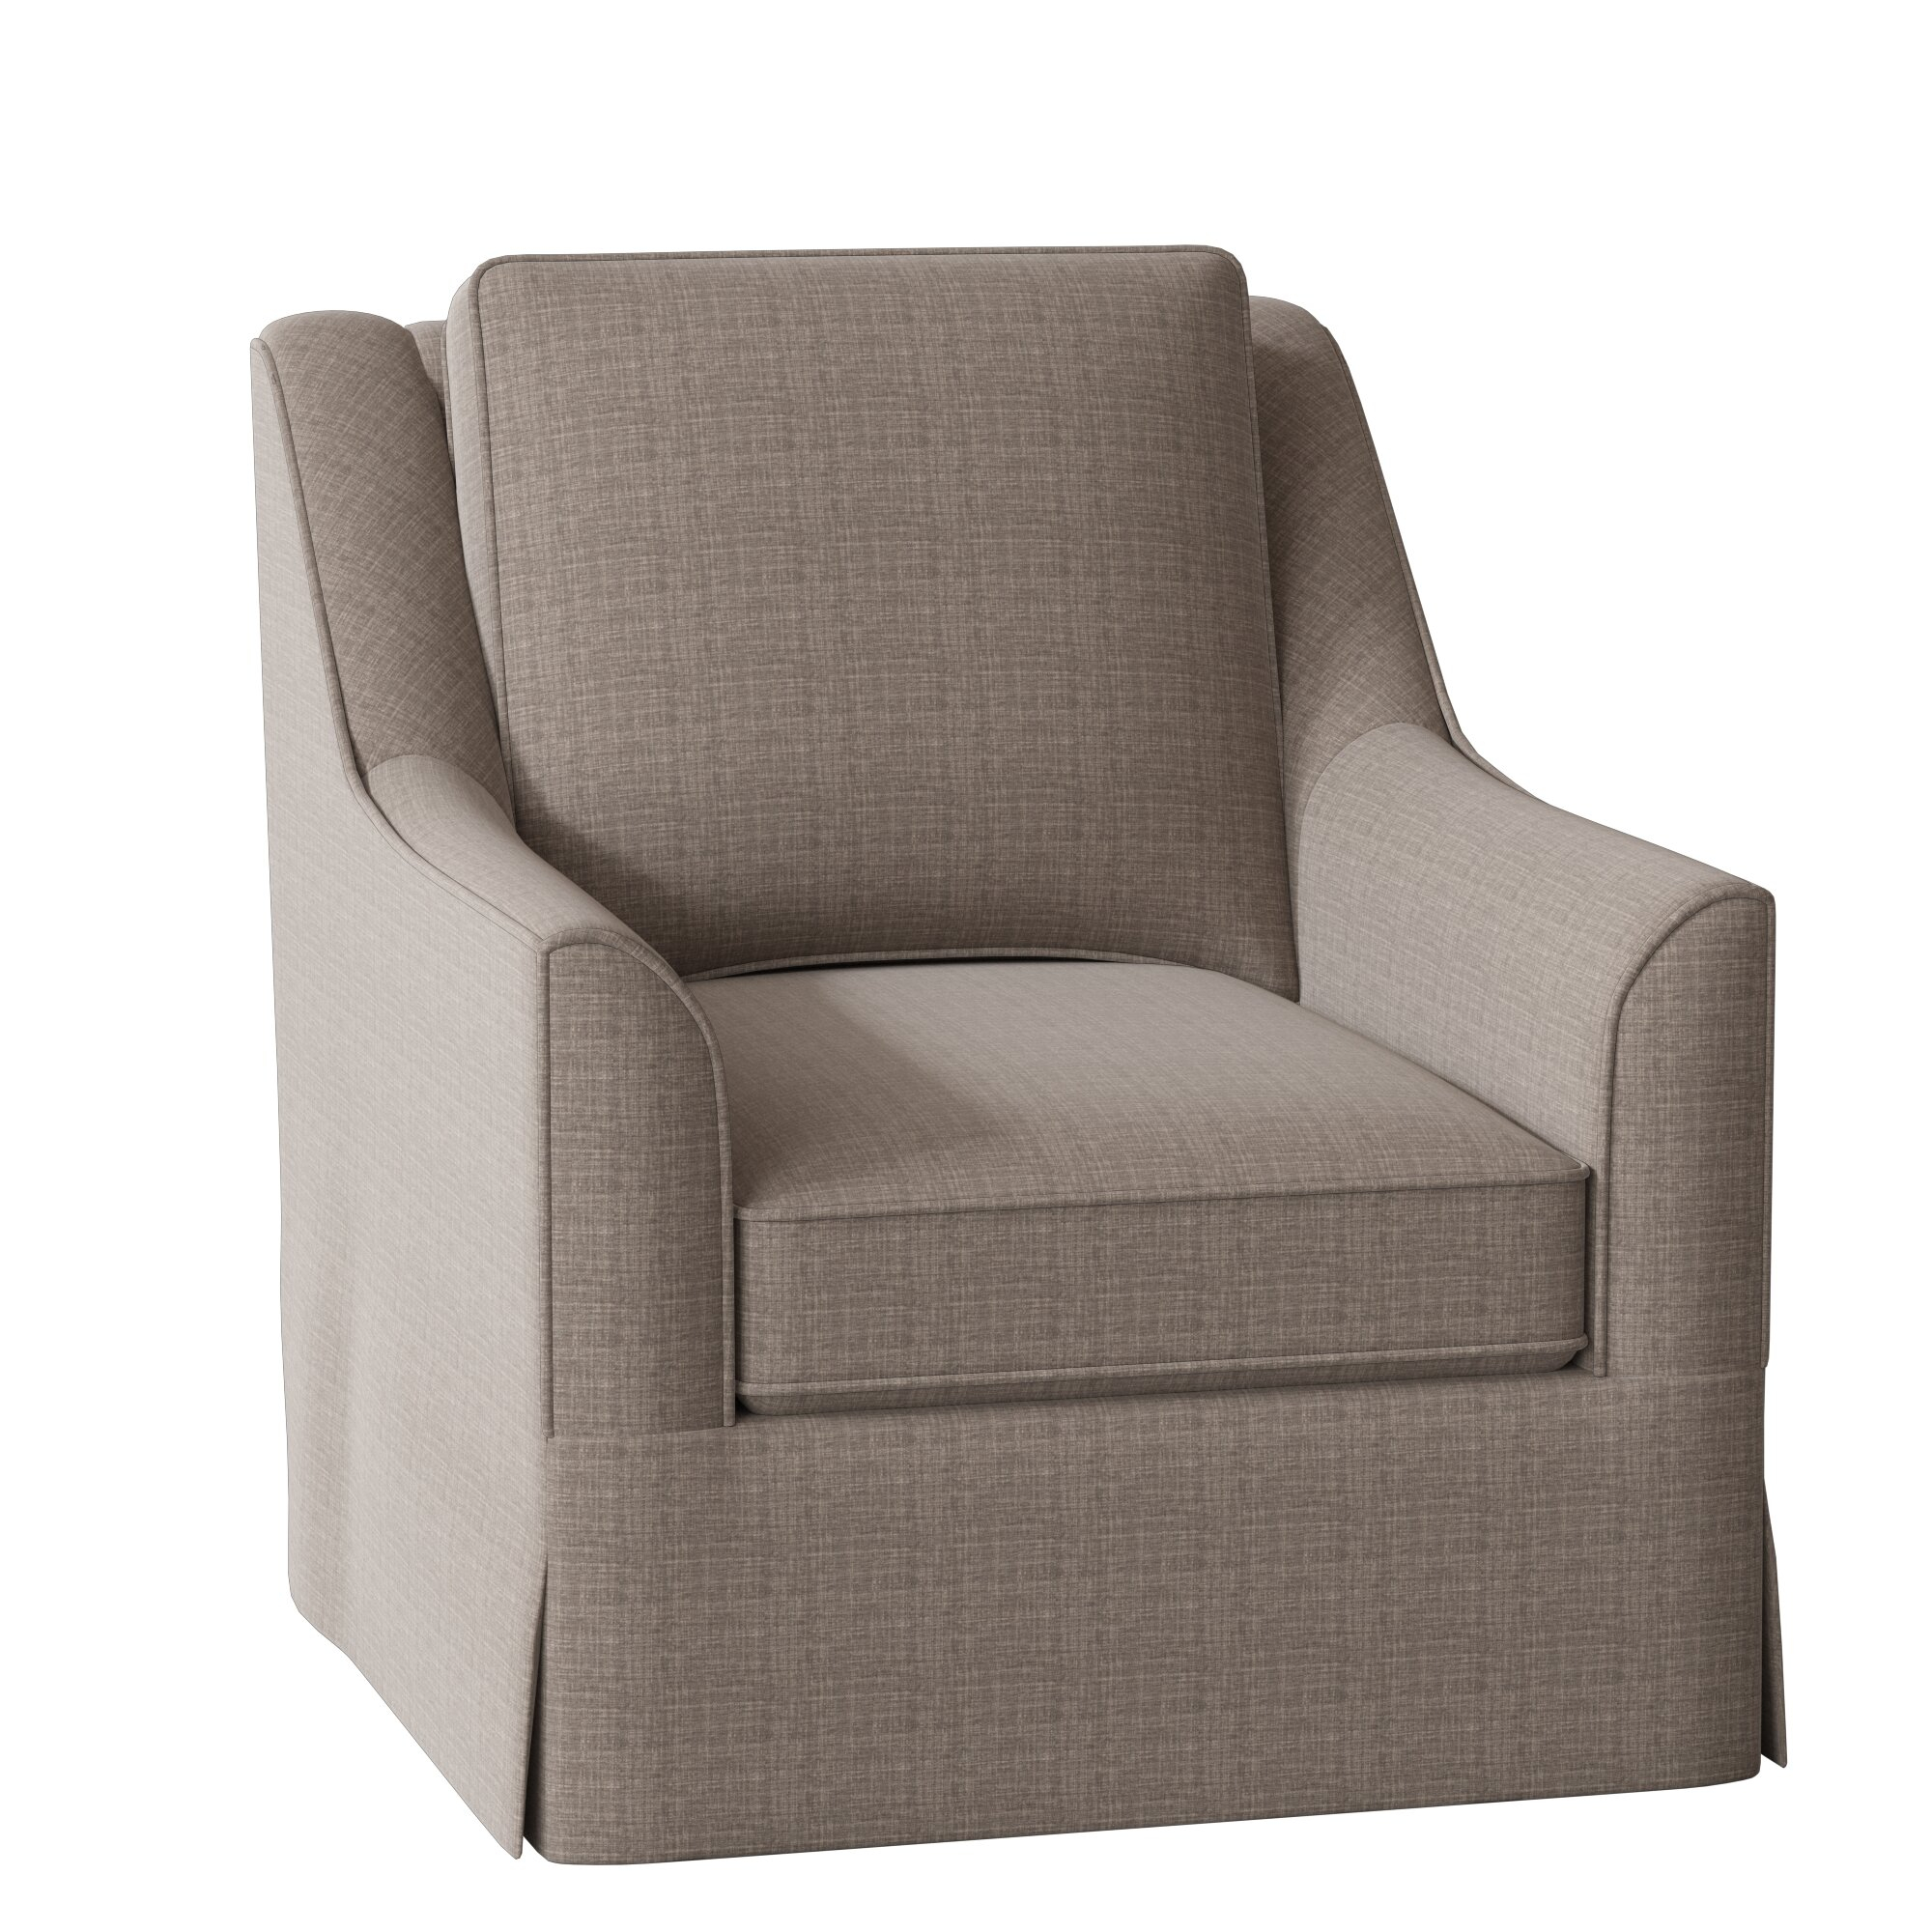 Bella Swivel Armchair Pertaining To Briseno Barrel Chairs (View 9 of 15)